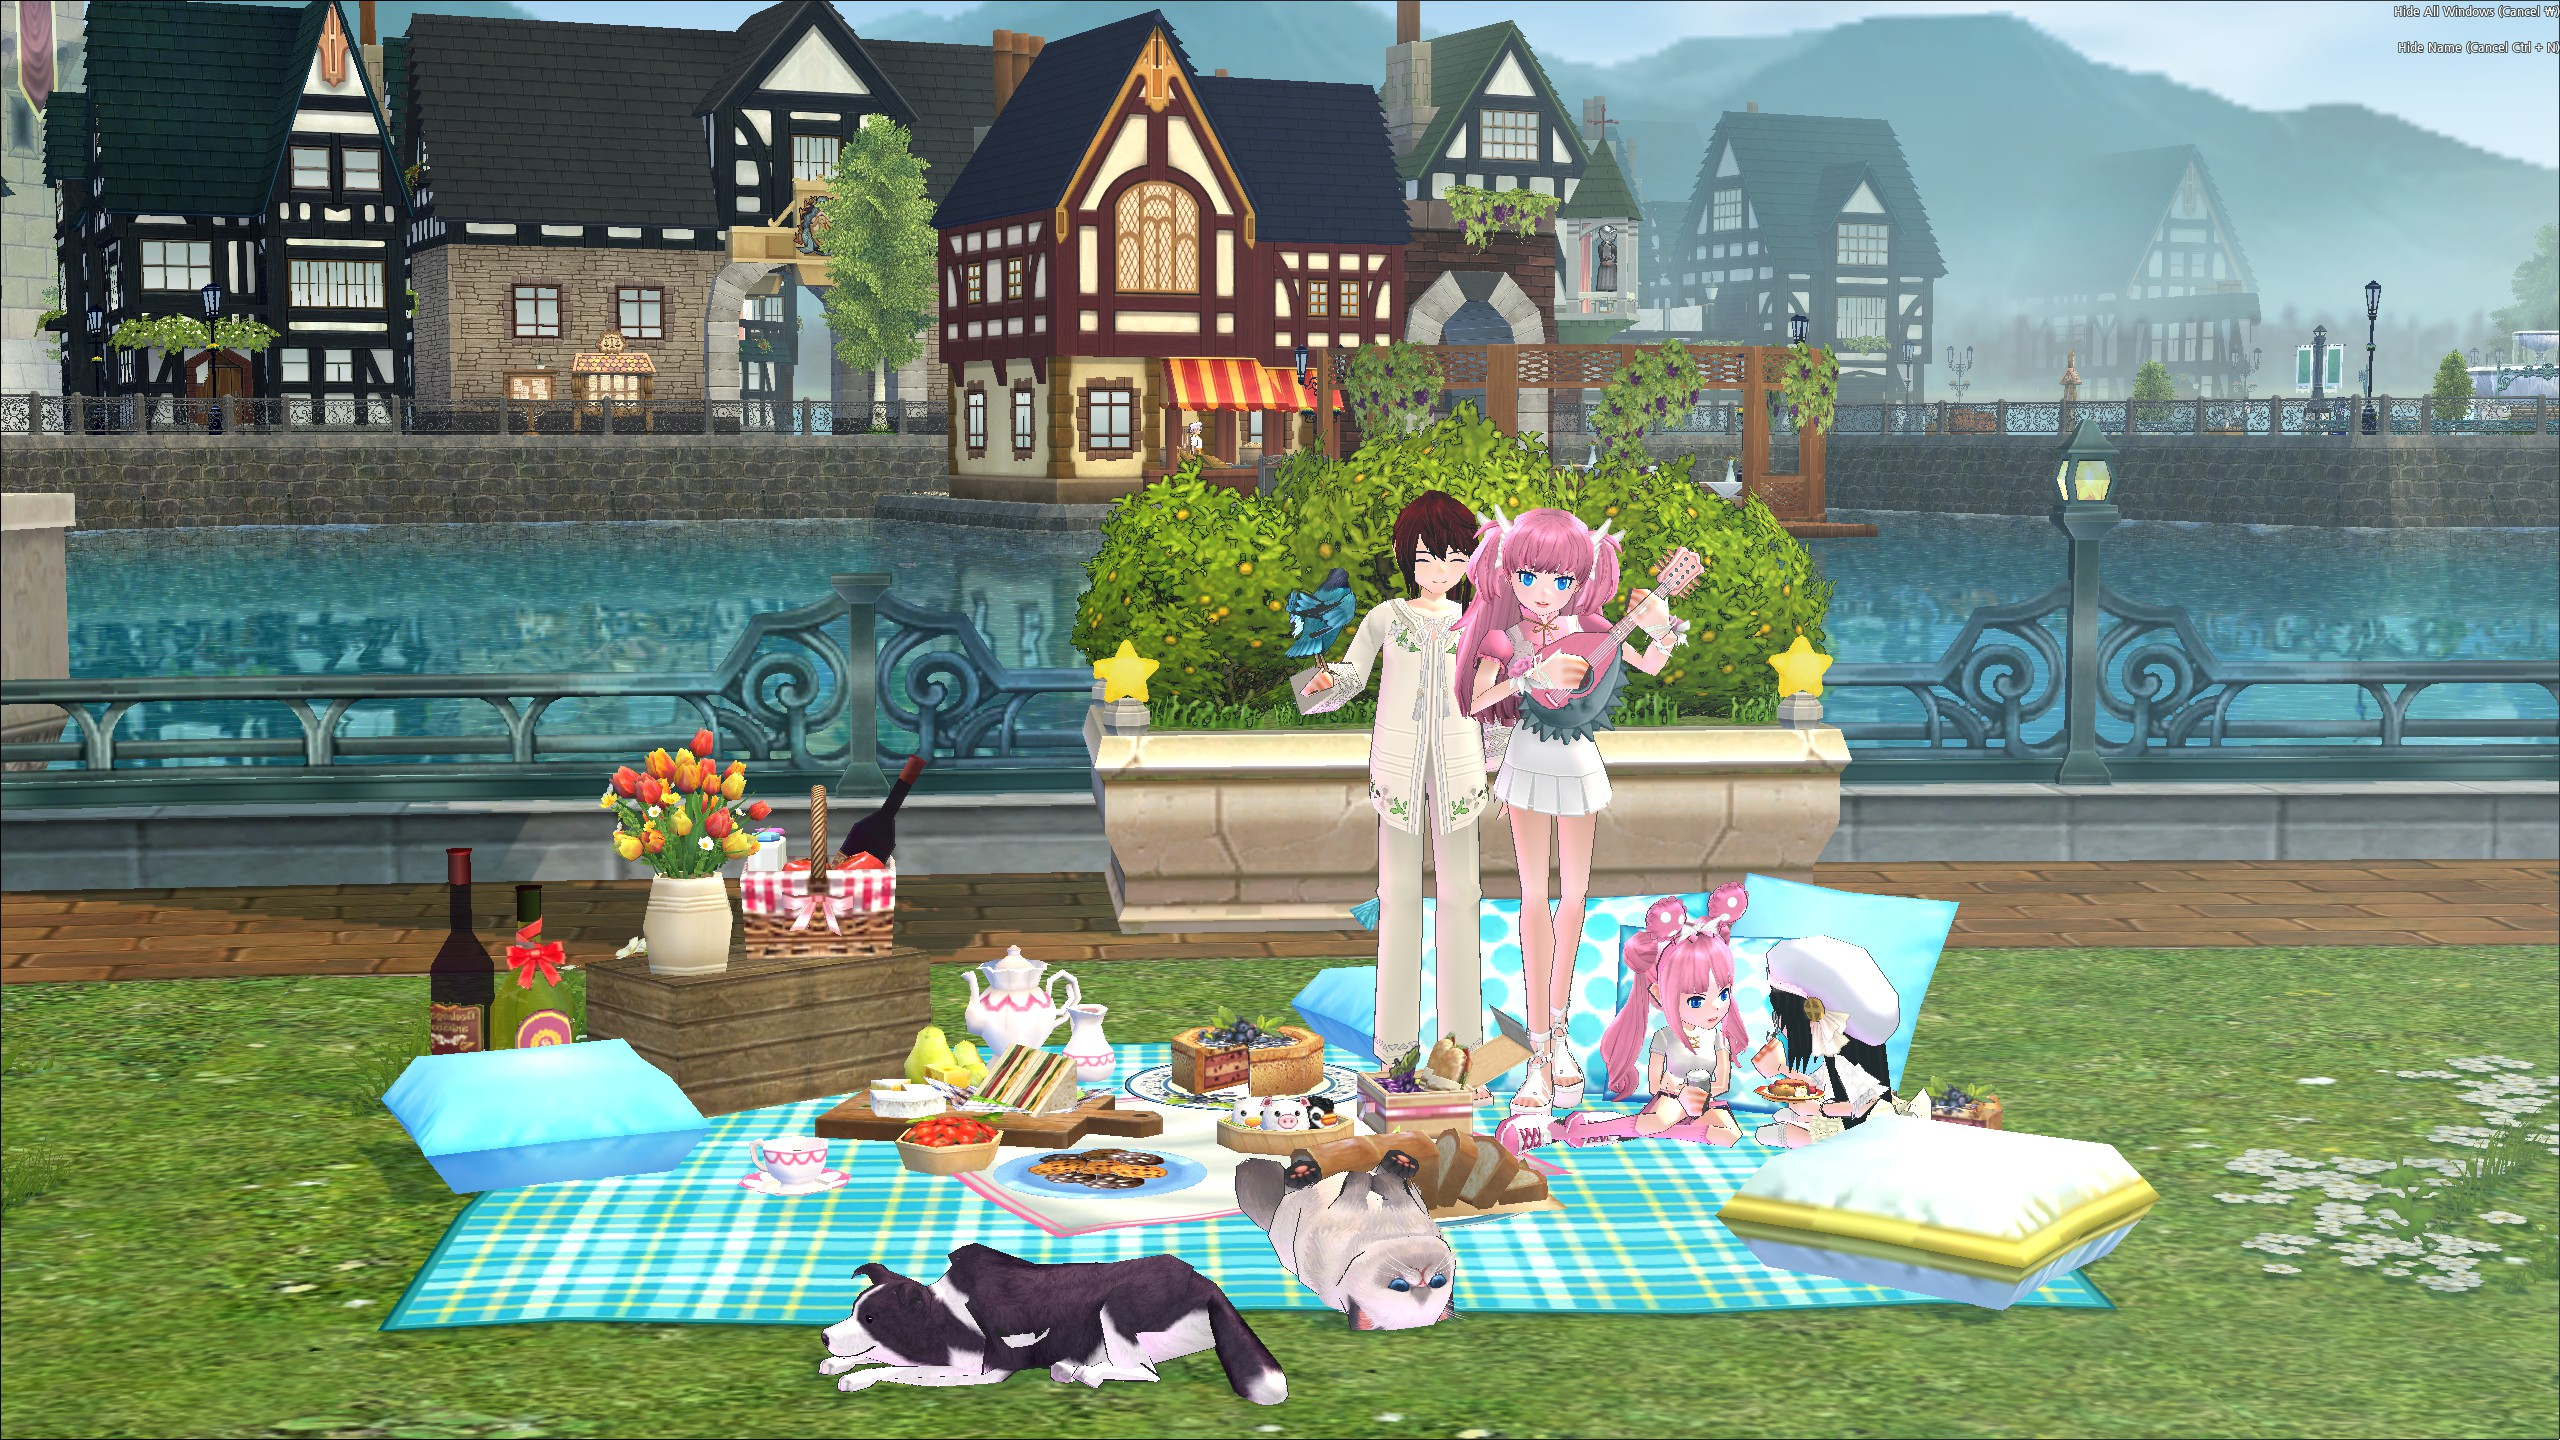 01_Early_Morning_Picnic_at_Emain_Macha.jpg